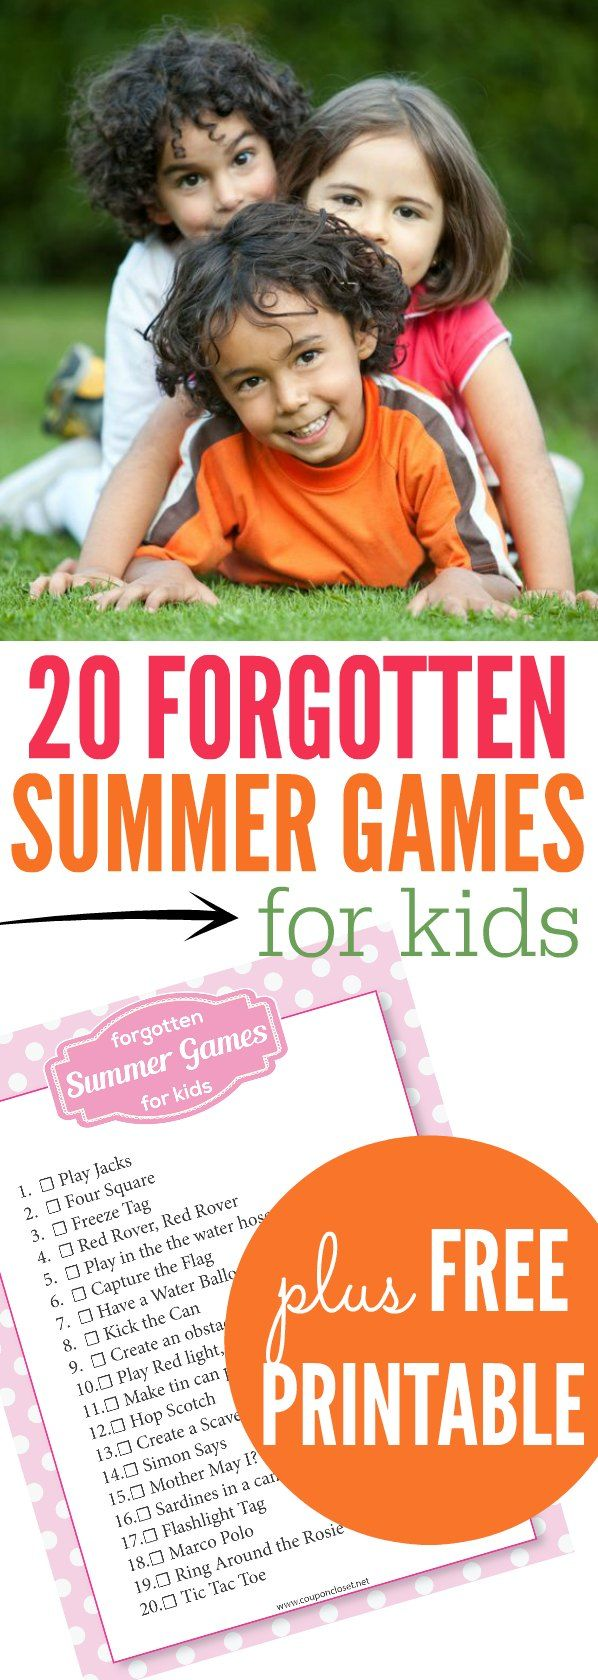 We have listed 20 forgotten summer games for kids. Some are fun outdoor games for kids while others are indoor games for kids for those rainy days.